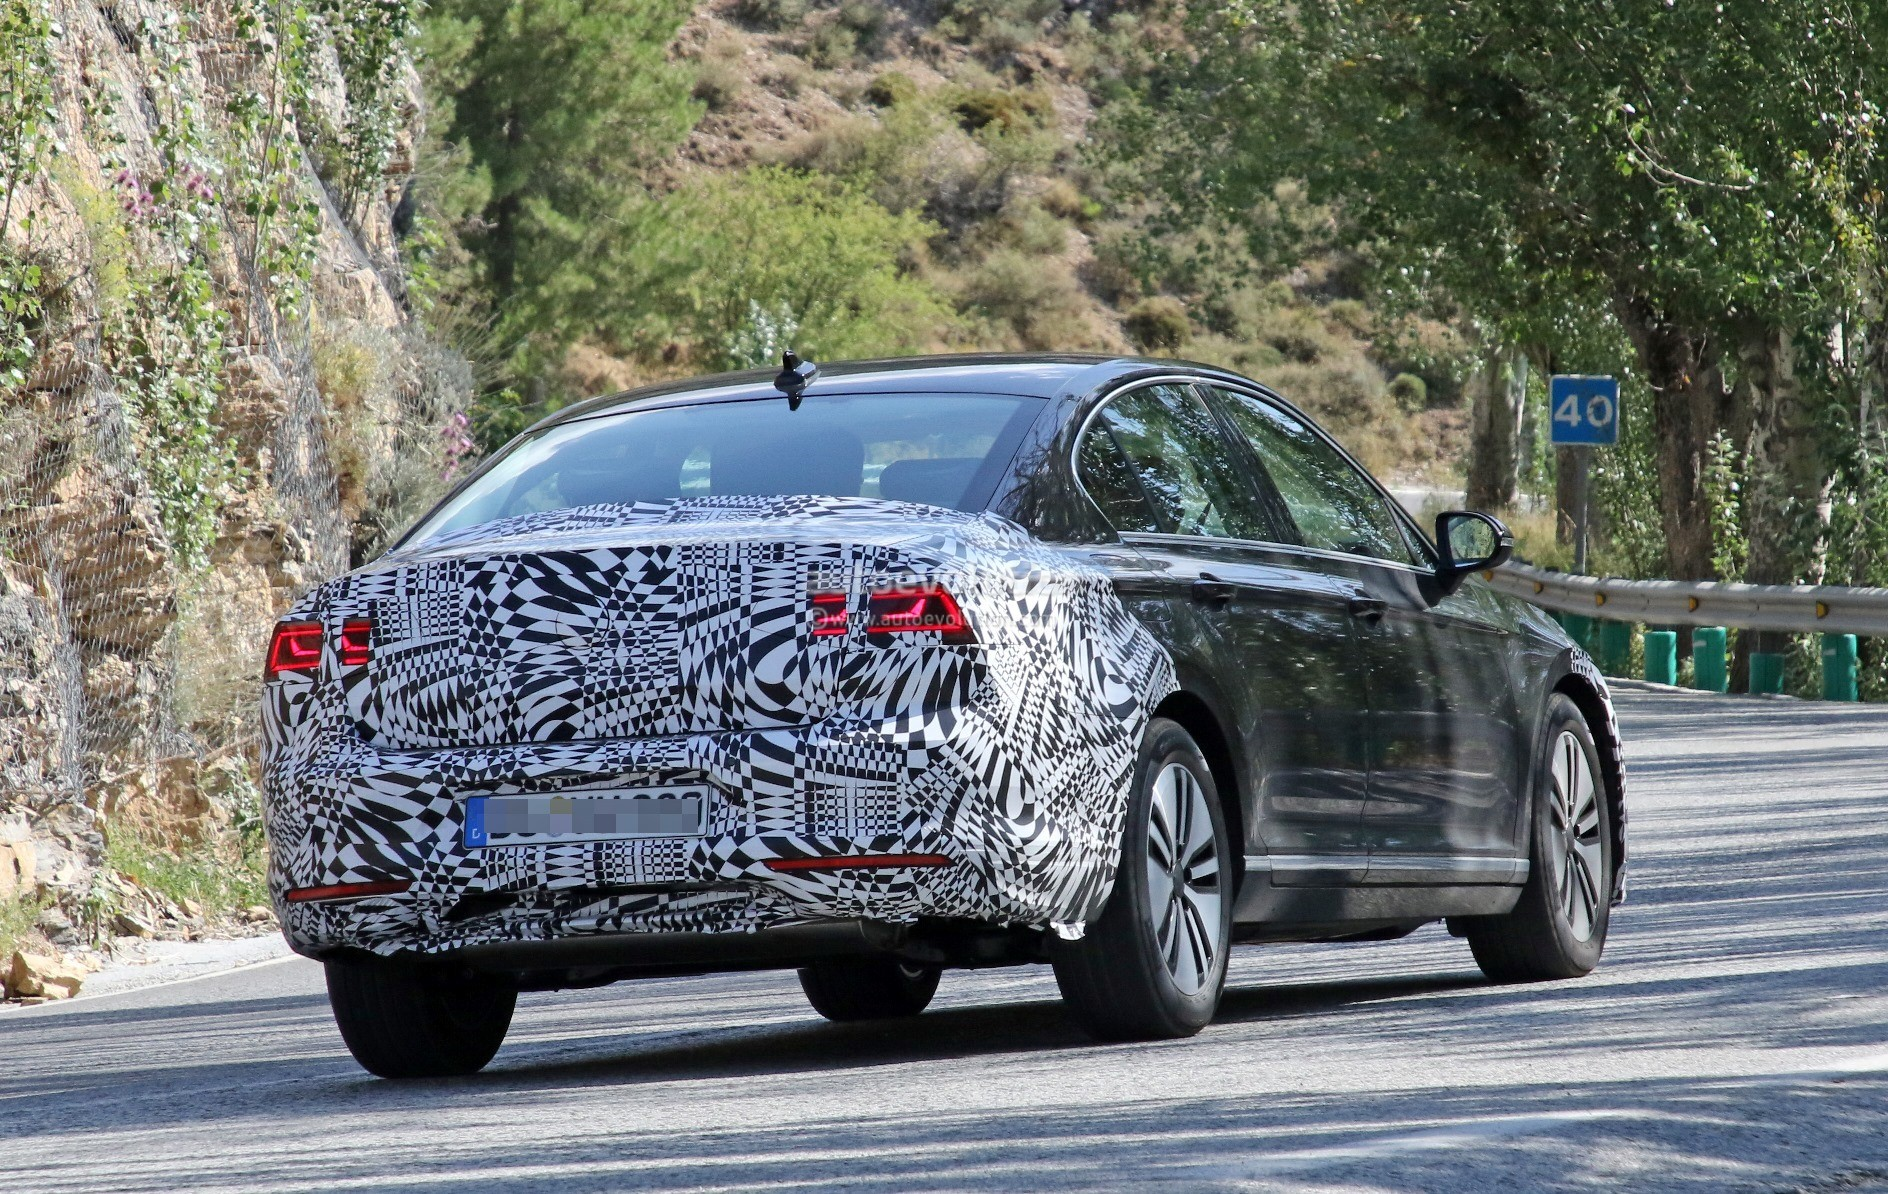 2019 Volkswagen Passat Facelift Spied, Prototype is Plug-In Hybrid - autoevolution